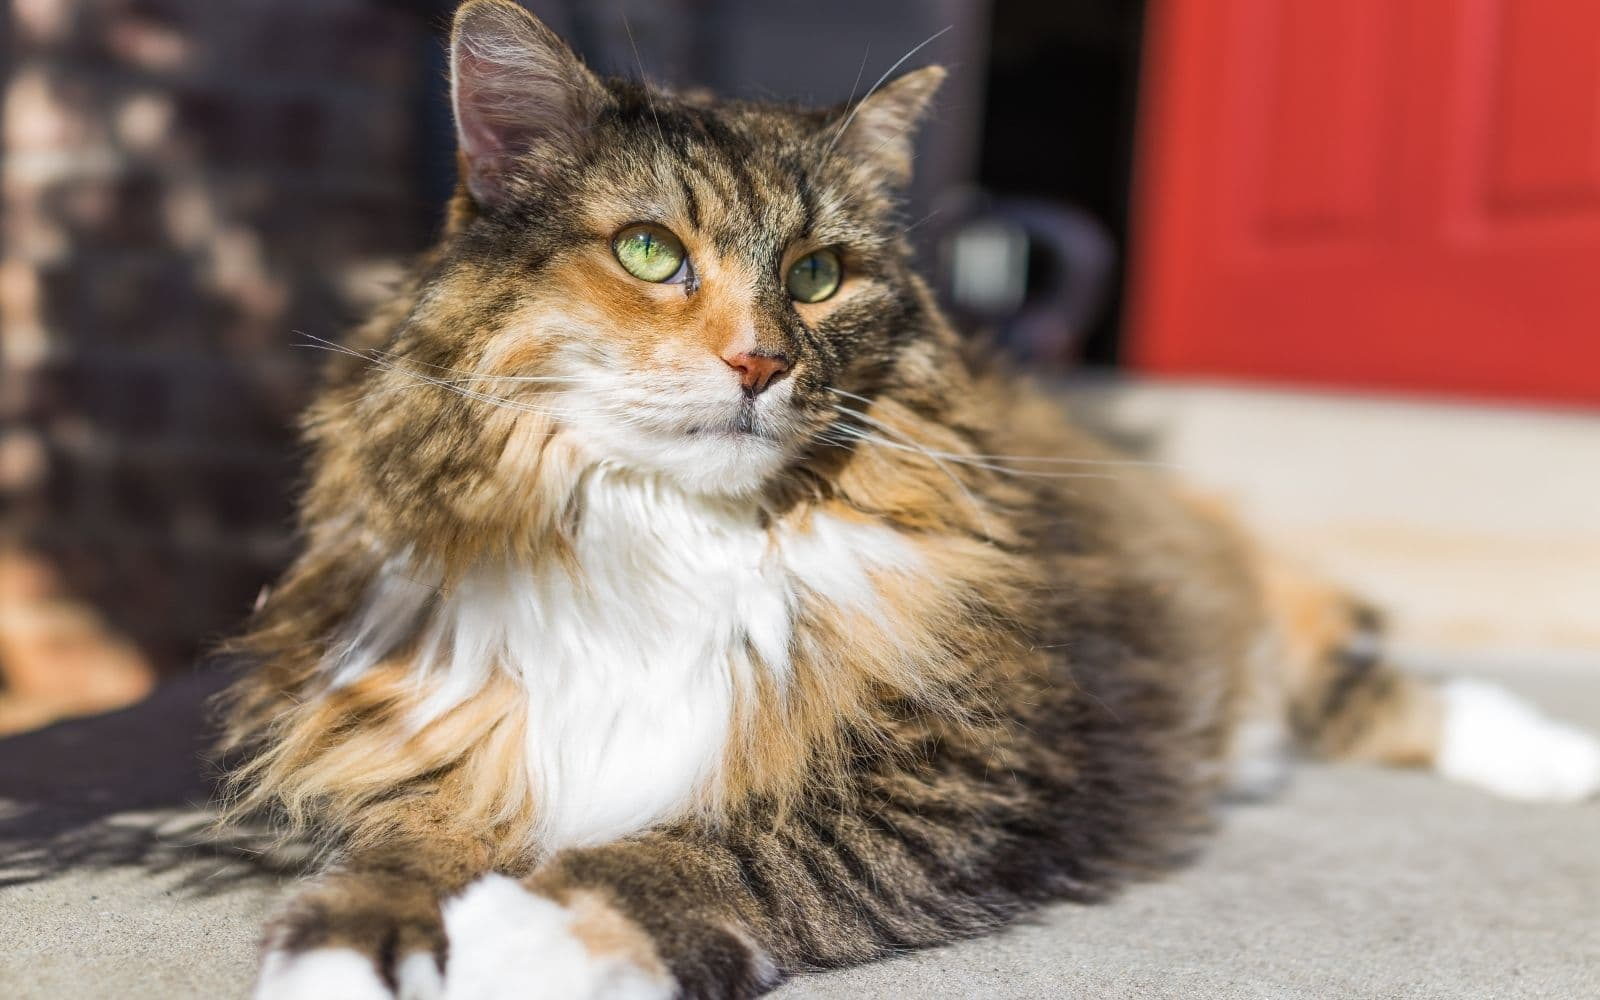 A maine coon with green eyes